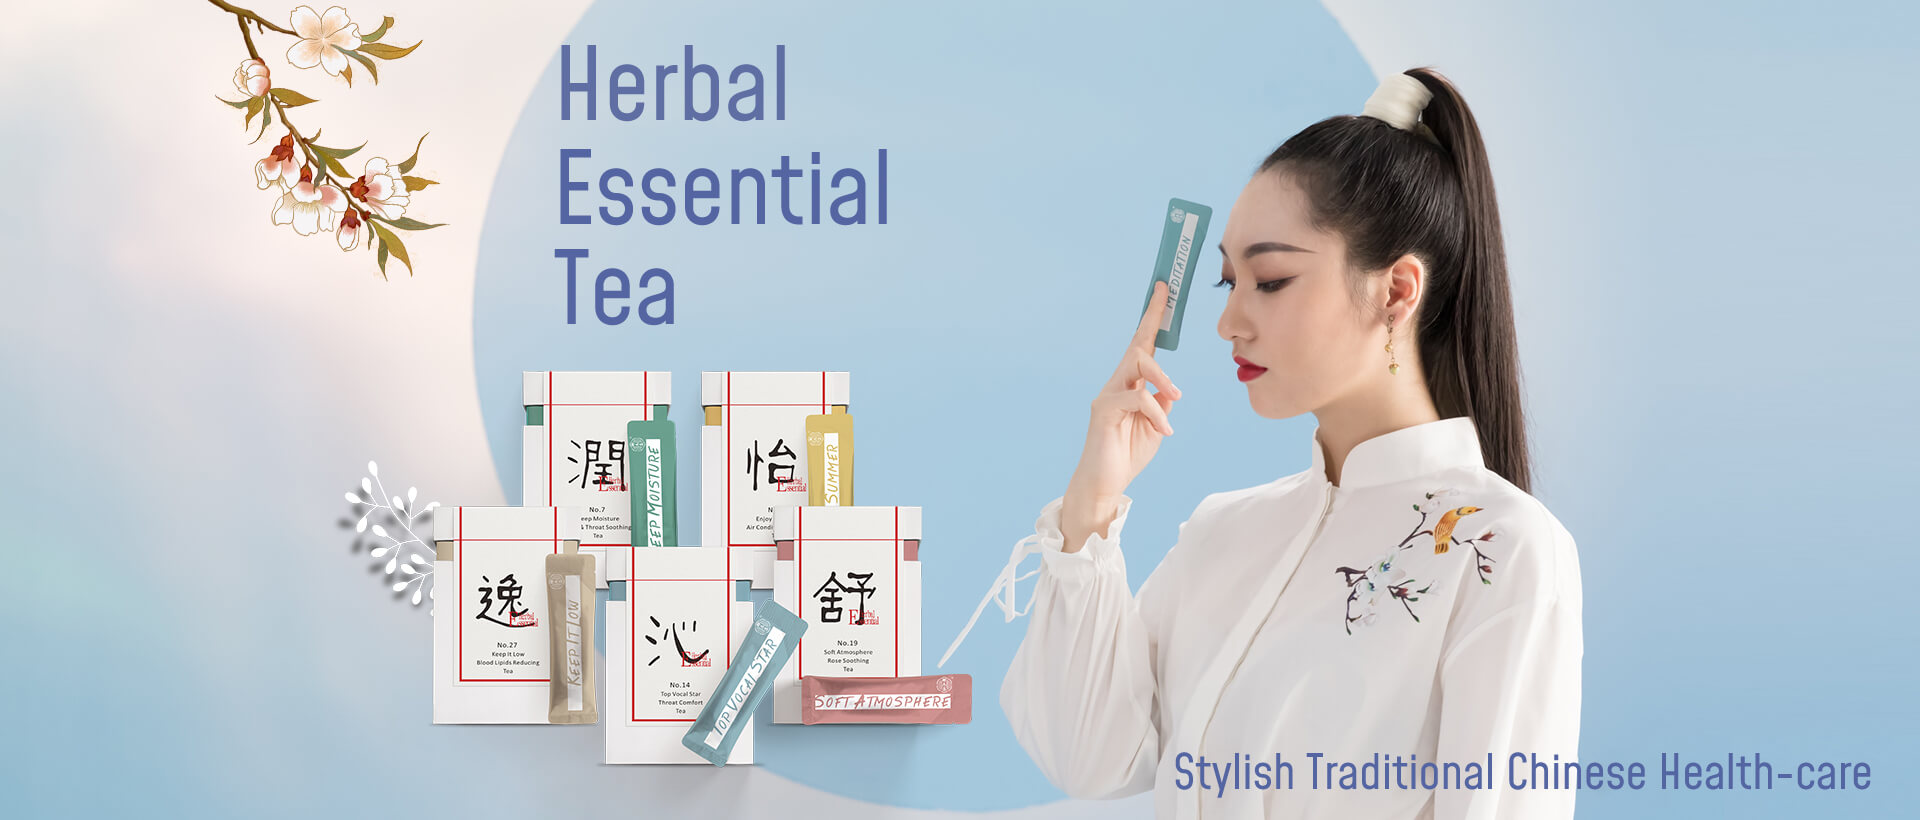 Herbal Essential Teas manufacturer and wholesale